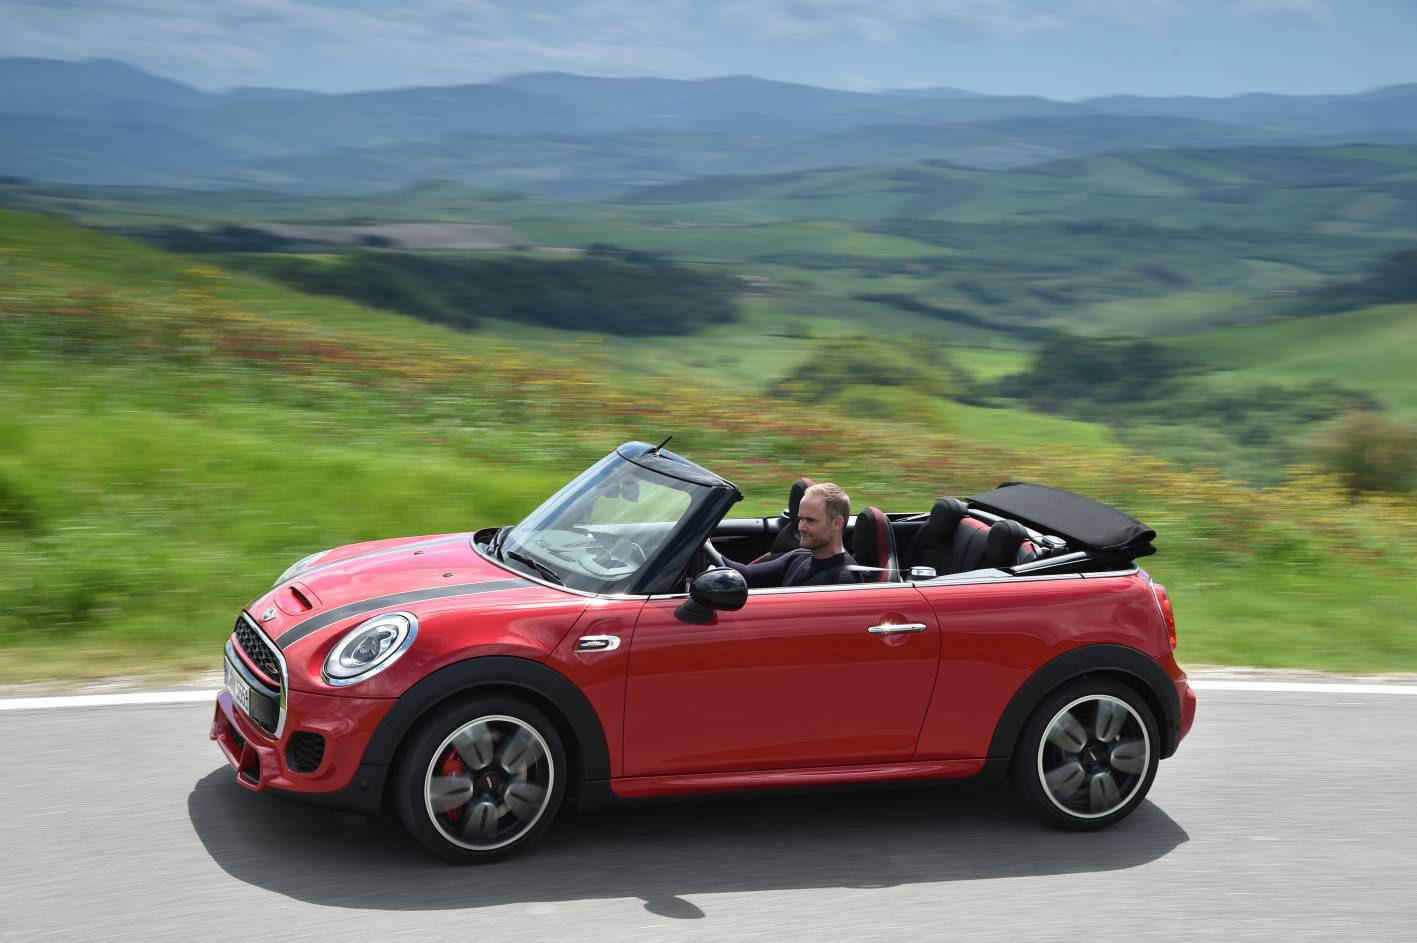 2016 mini john cooper works goes topless in new convertible guise. Black Bedroom Furniture Sets. Home Design Ideas